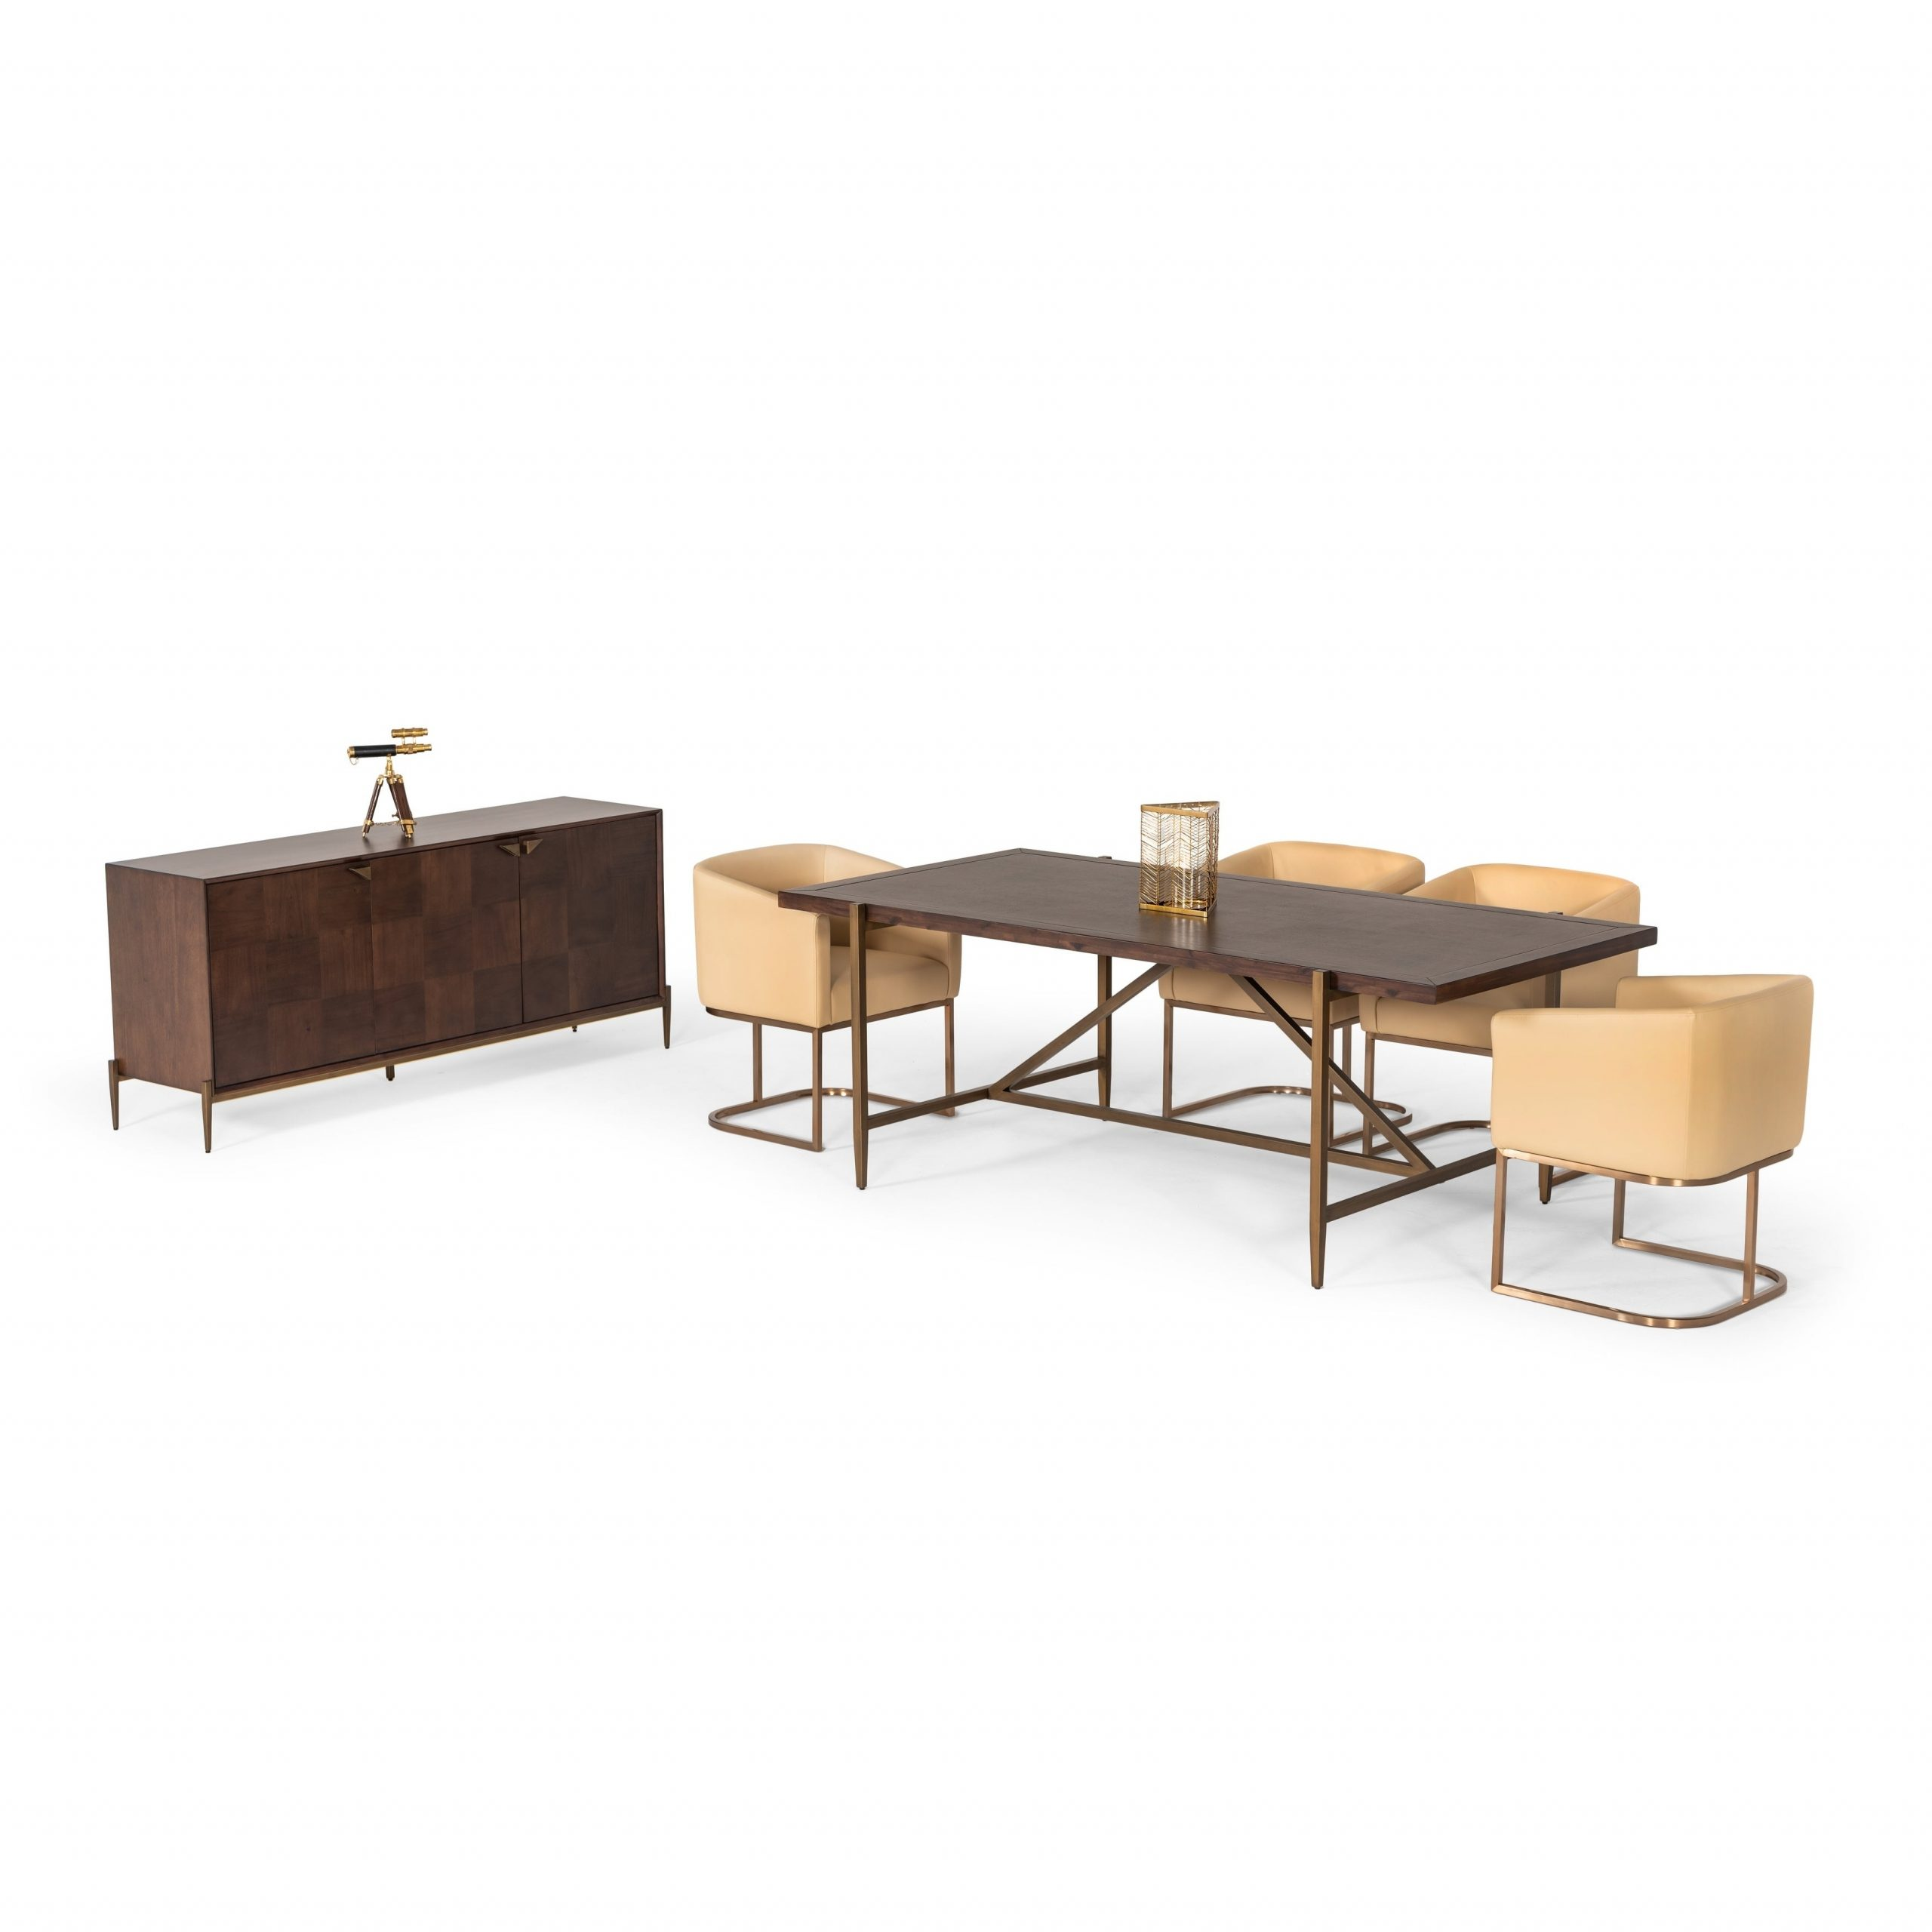 Modrest Shane Modern Acacia & Brass Dining Table Intended For Latest Salvaged Black Shayne Drop Leaf Kitchen Tables (View 23 of 25)